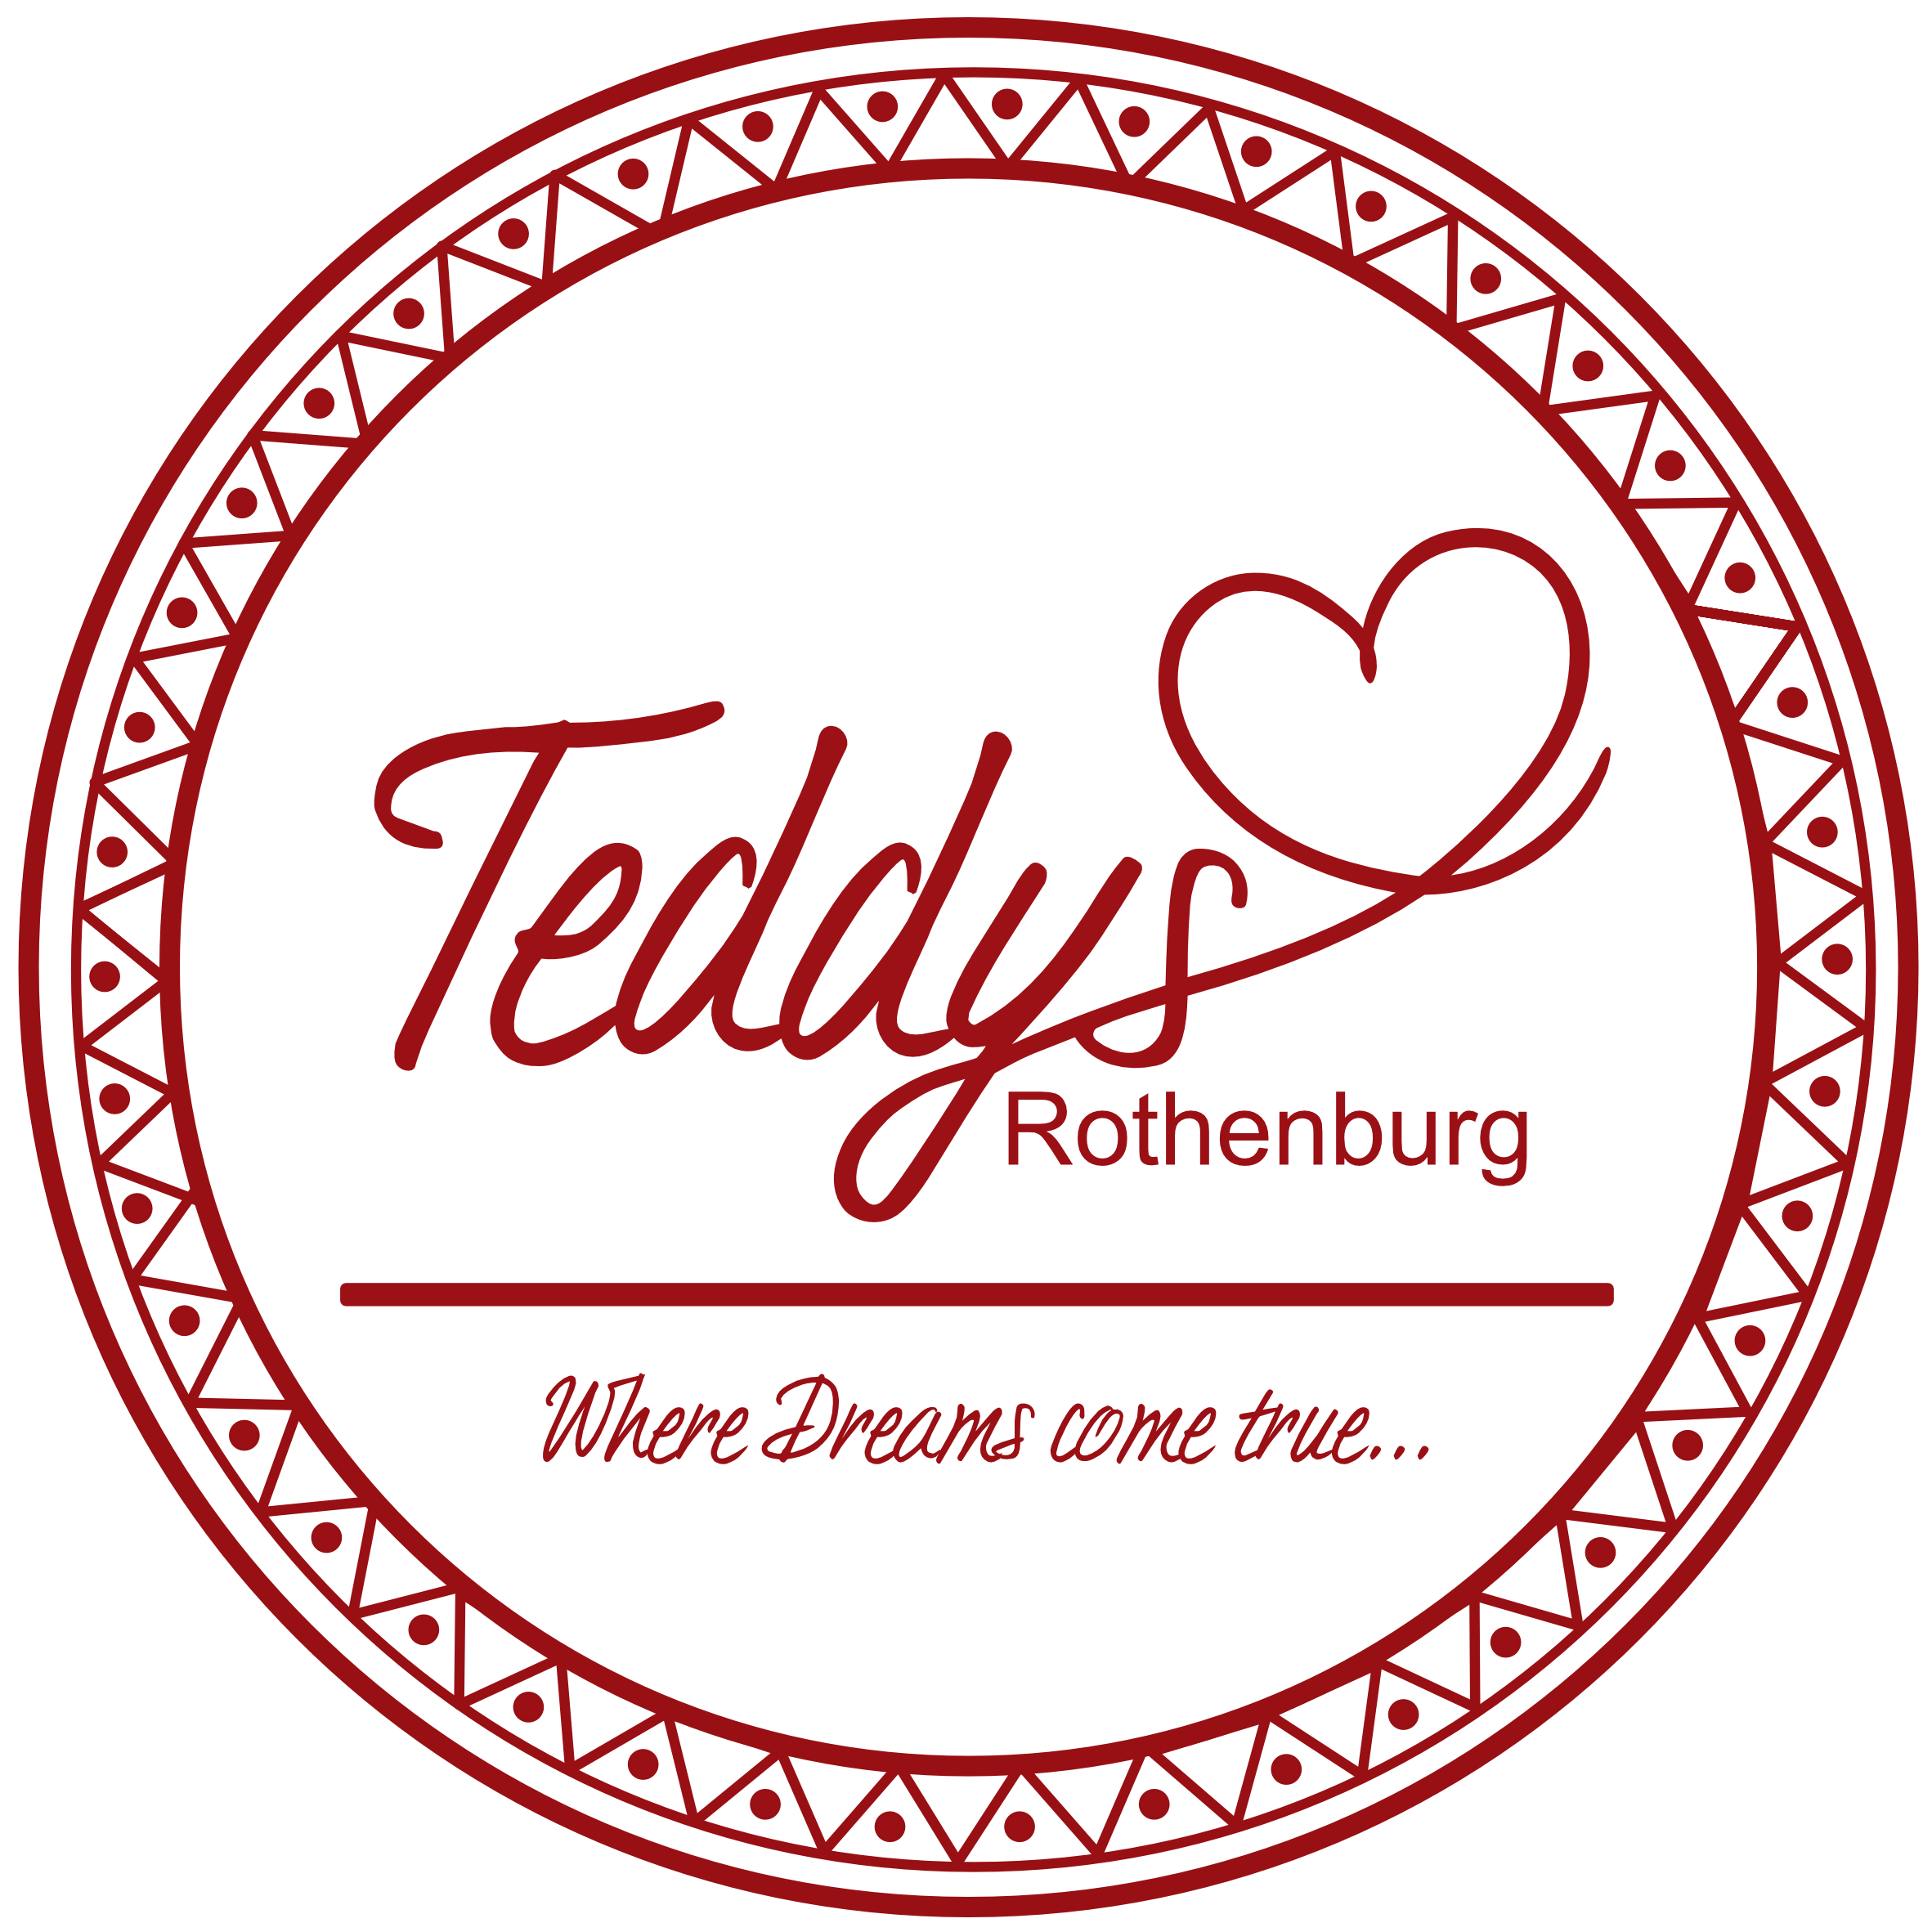 Teddys Rothenburg